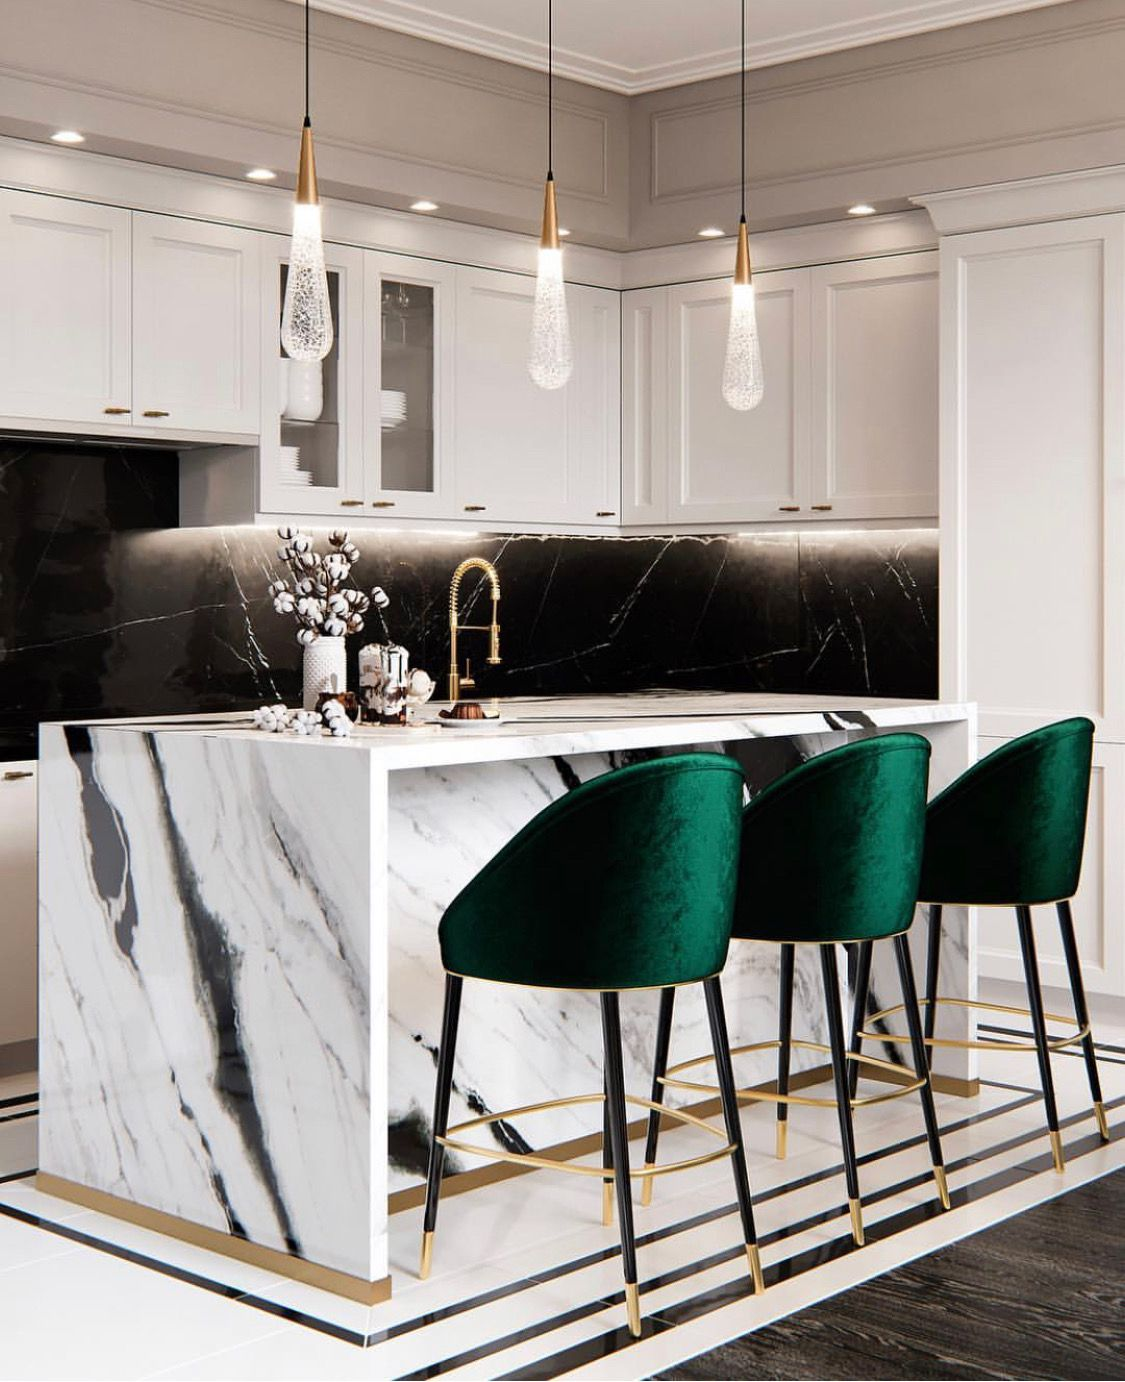 51 Green Kitchen Designs: Loving The Emerald Green! In 2019